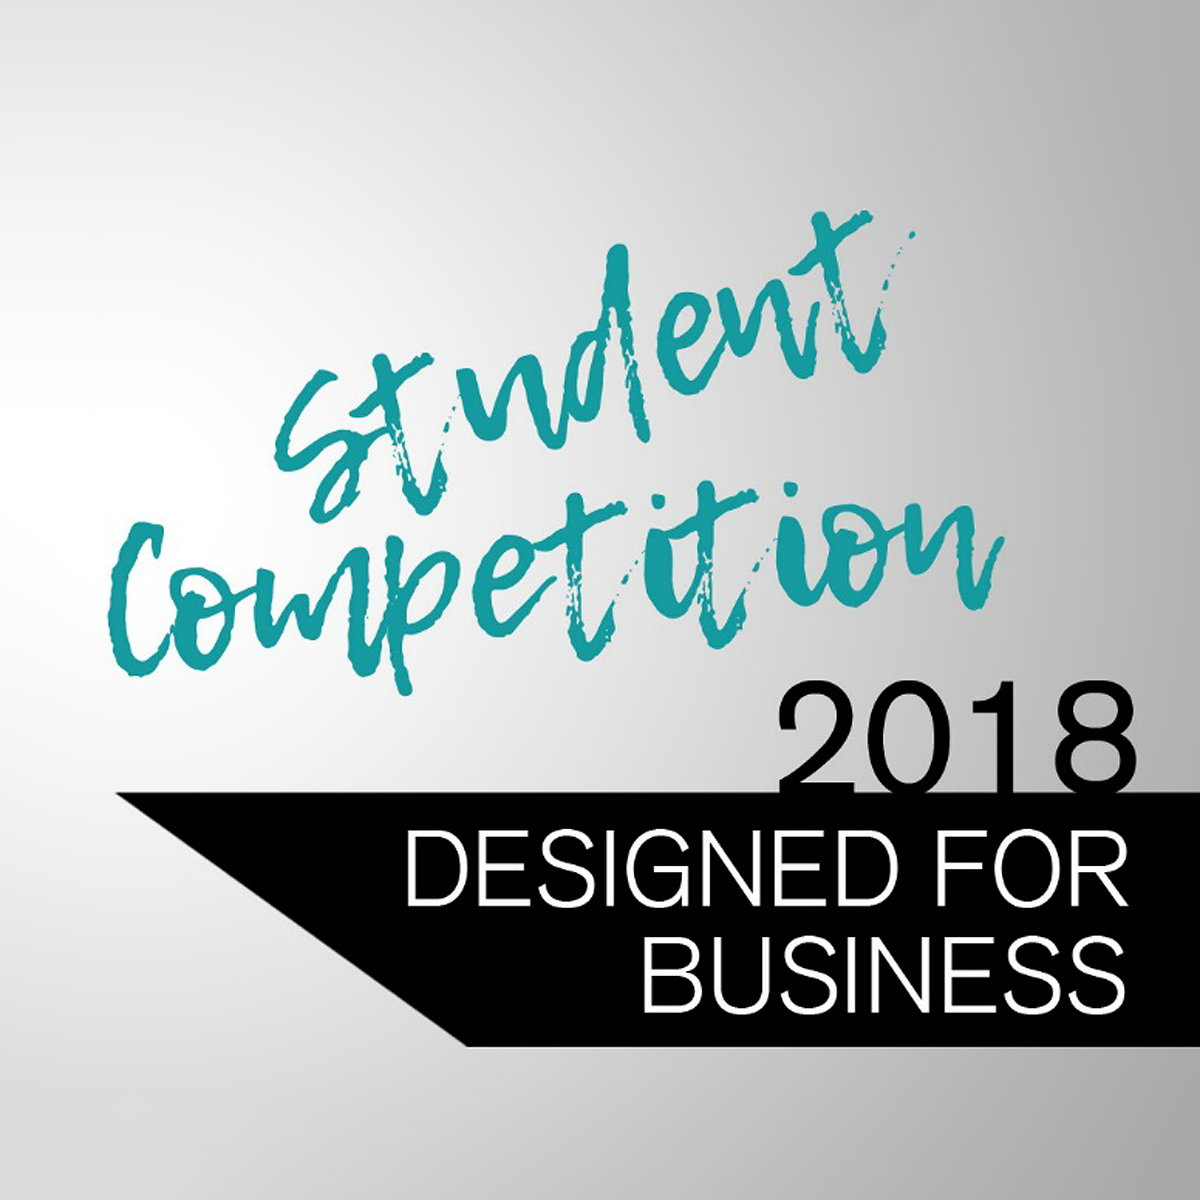 SBID Launches New Student Competition - Designed for Business